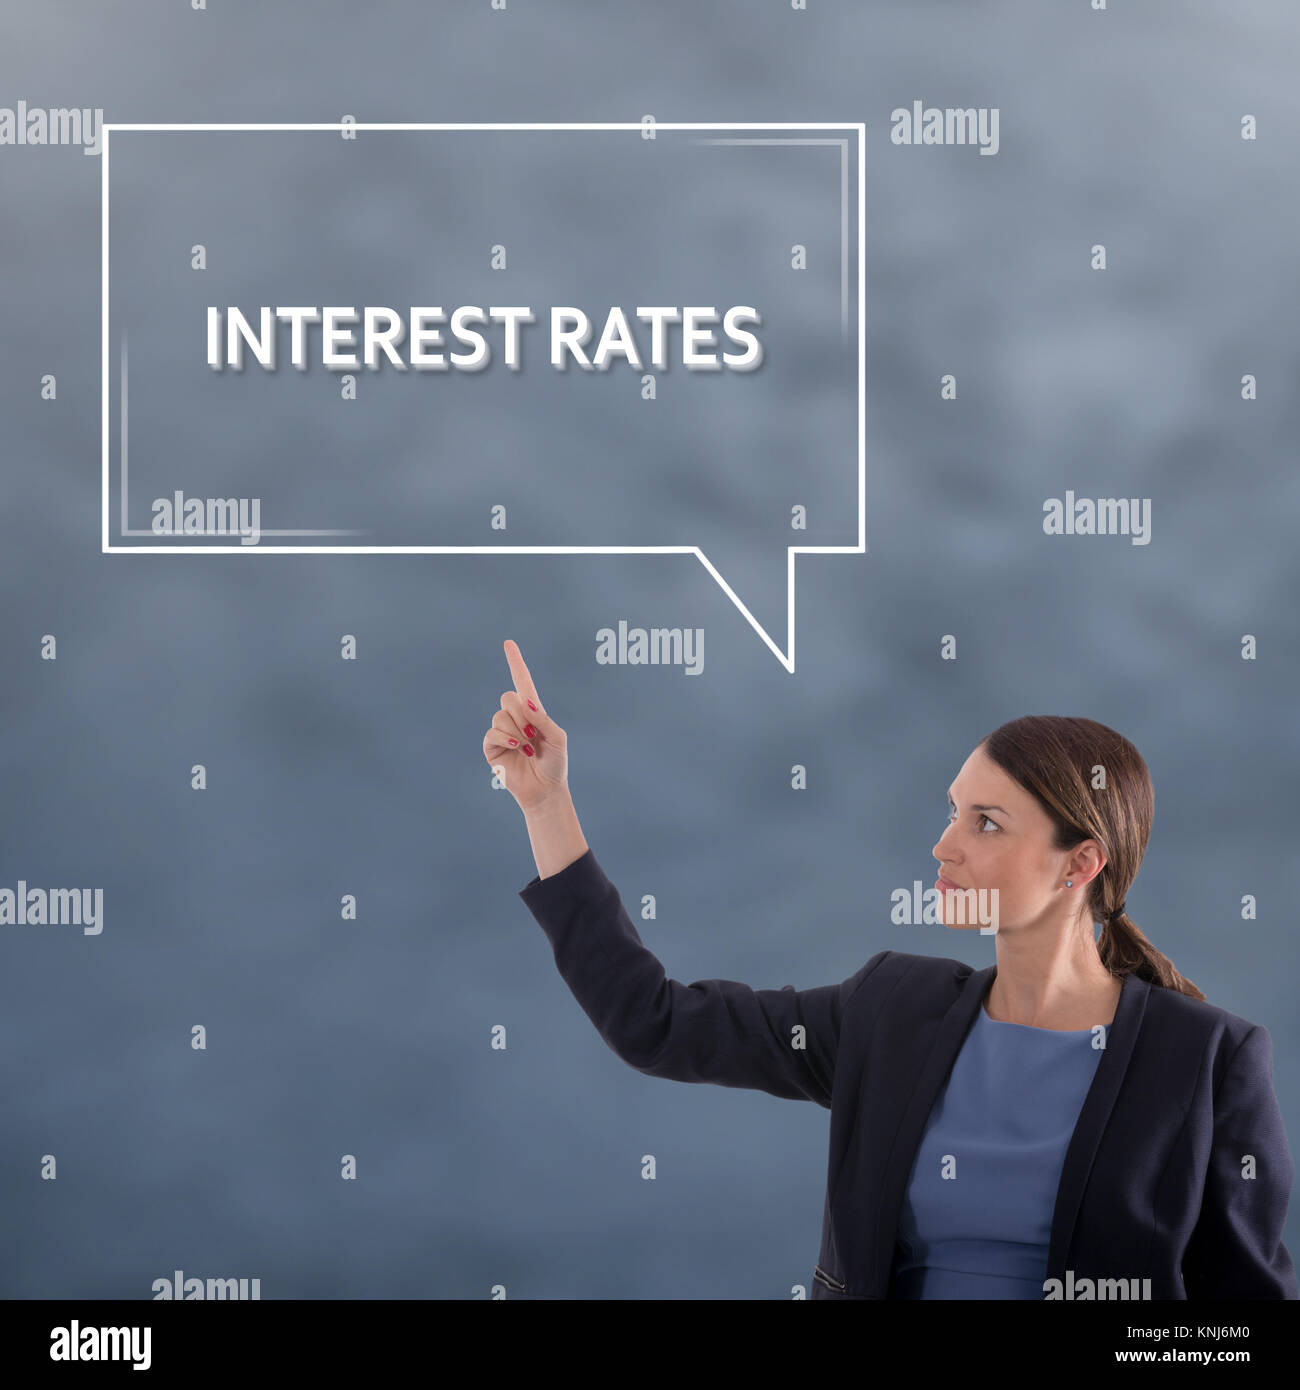 INTEREST RATES Business Concept. Business Woman Graphic Concept - Stock Image